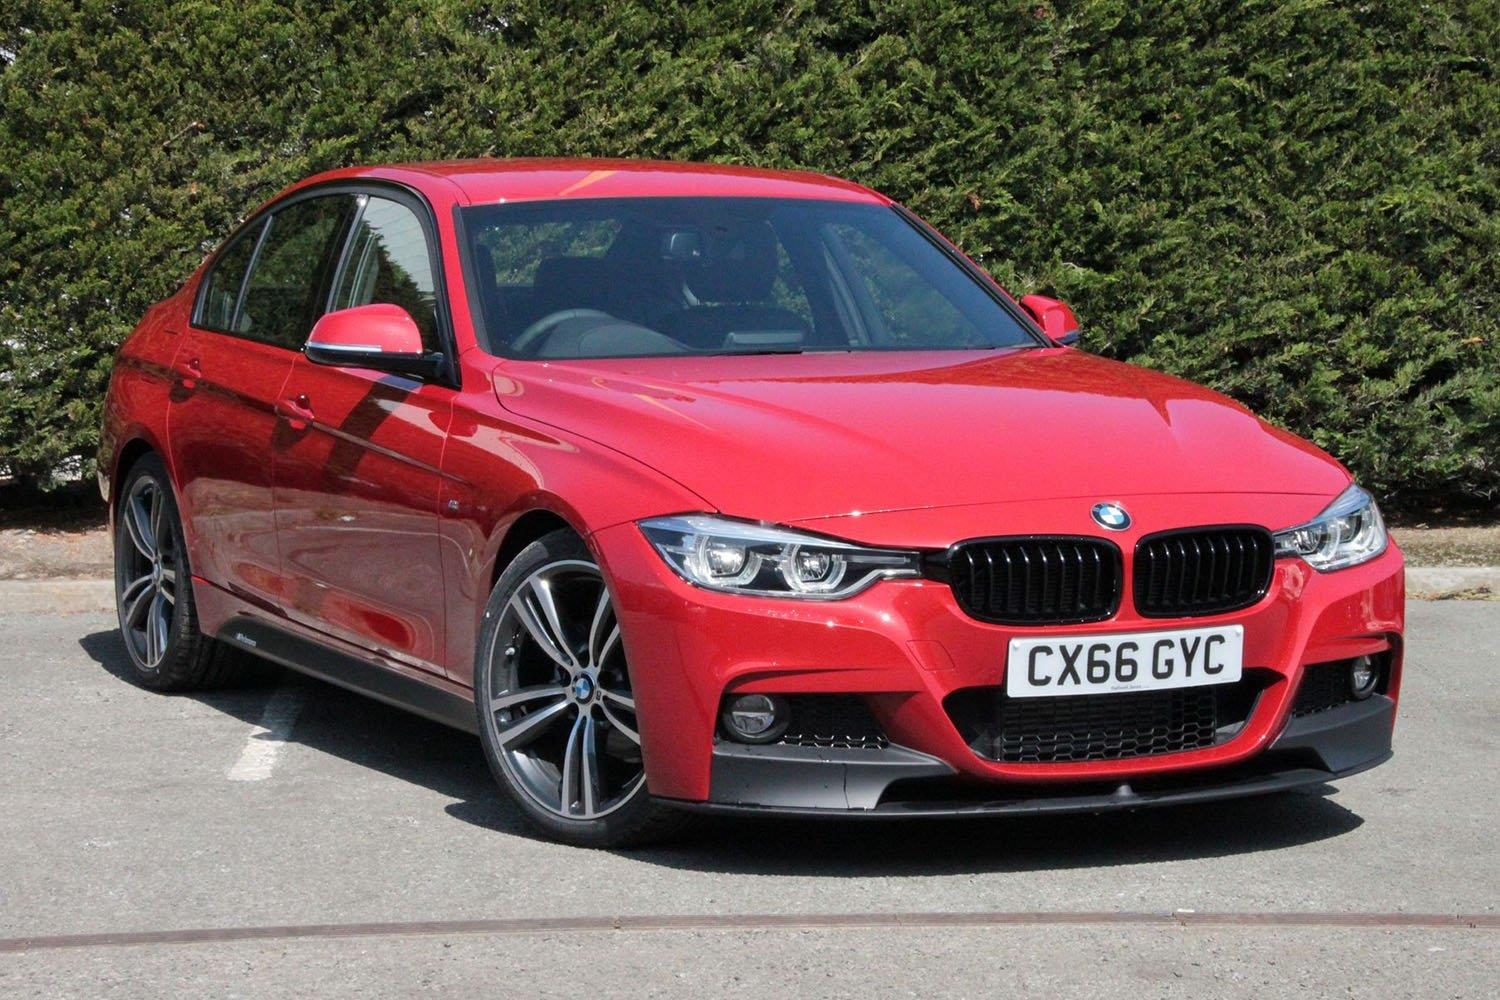 BMW 3 Series Saloon CX66GYC - Image 2